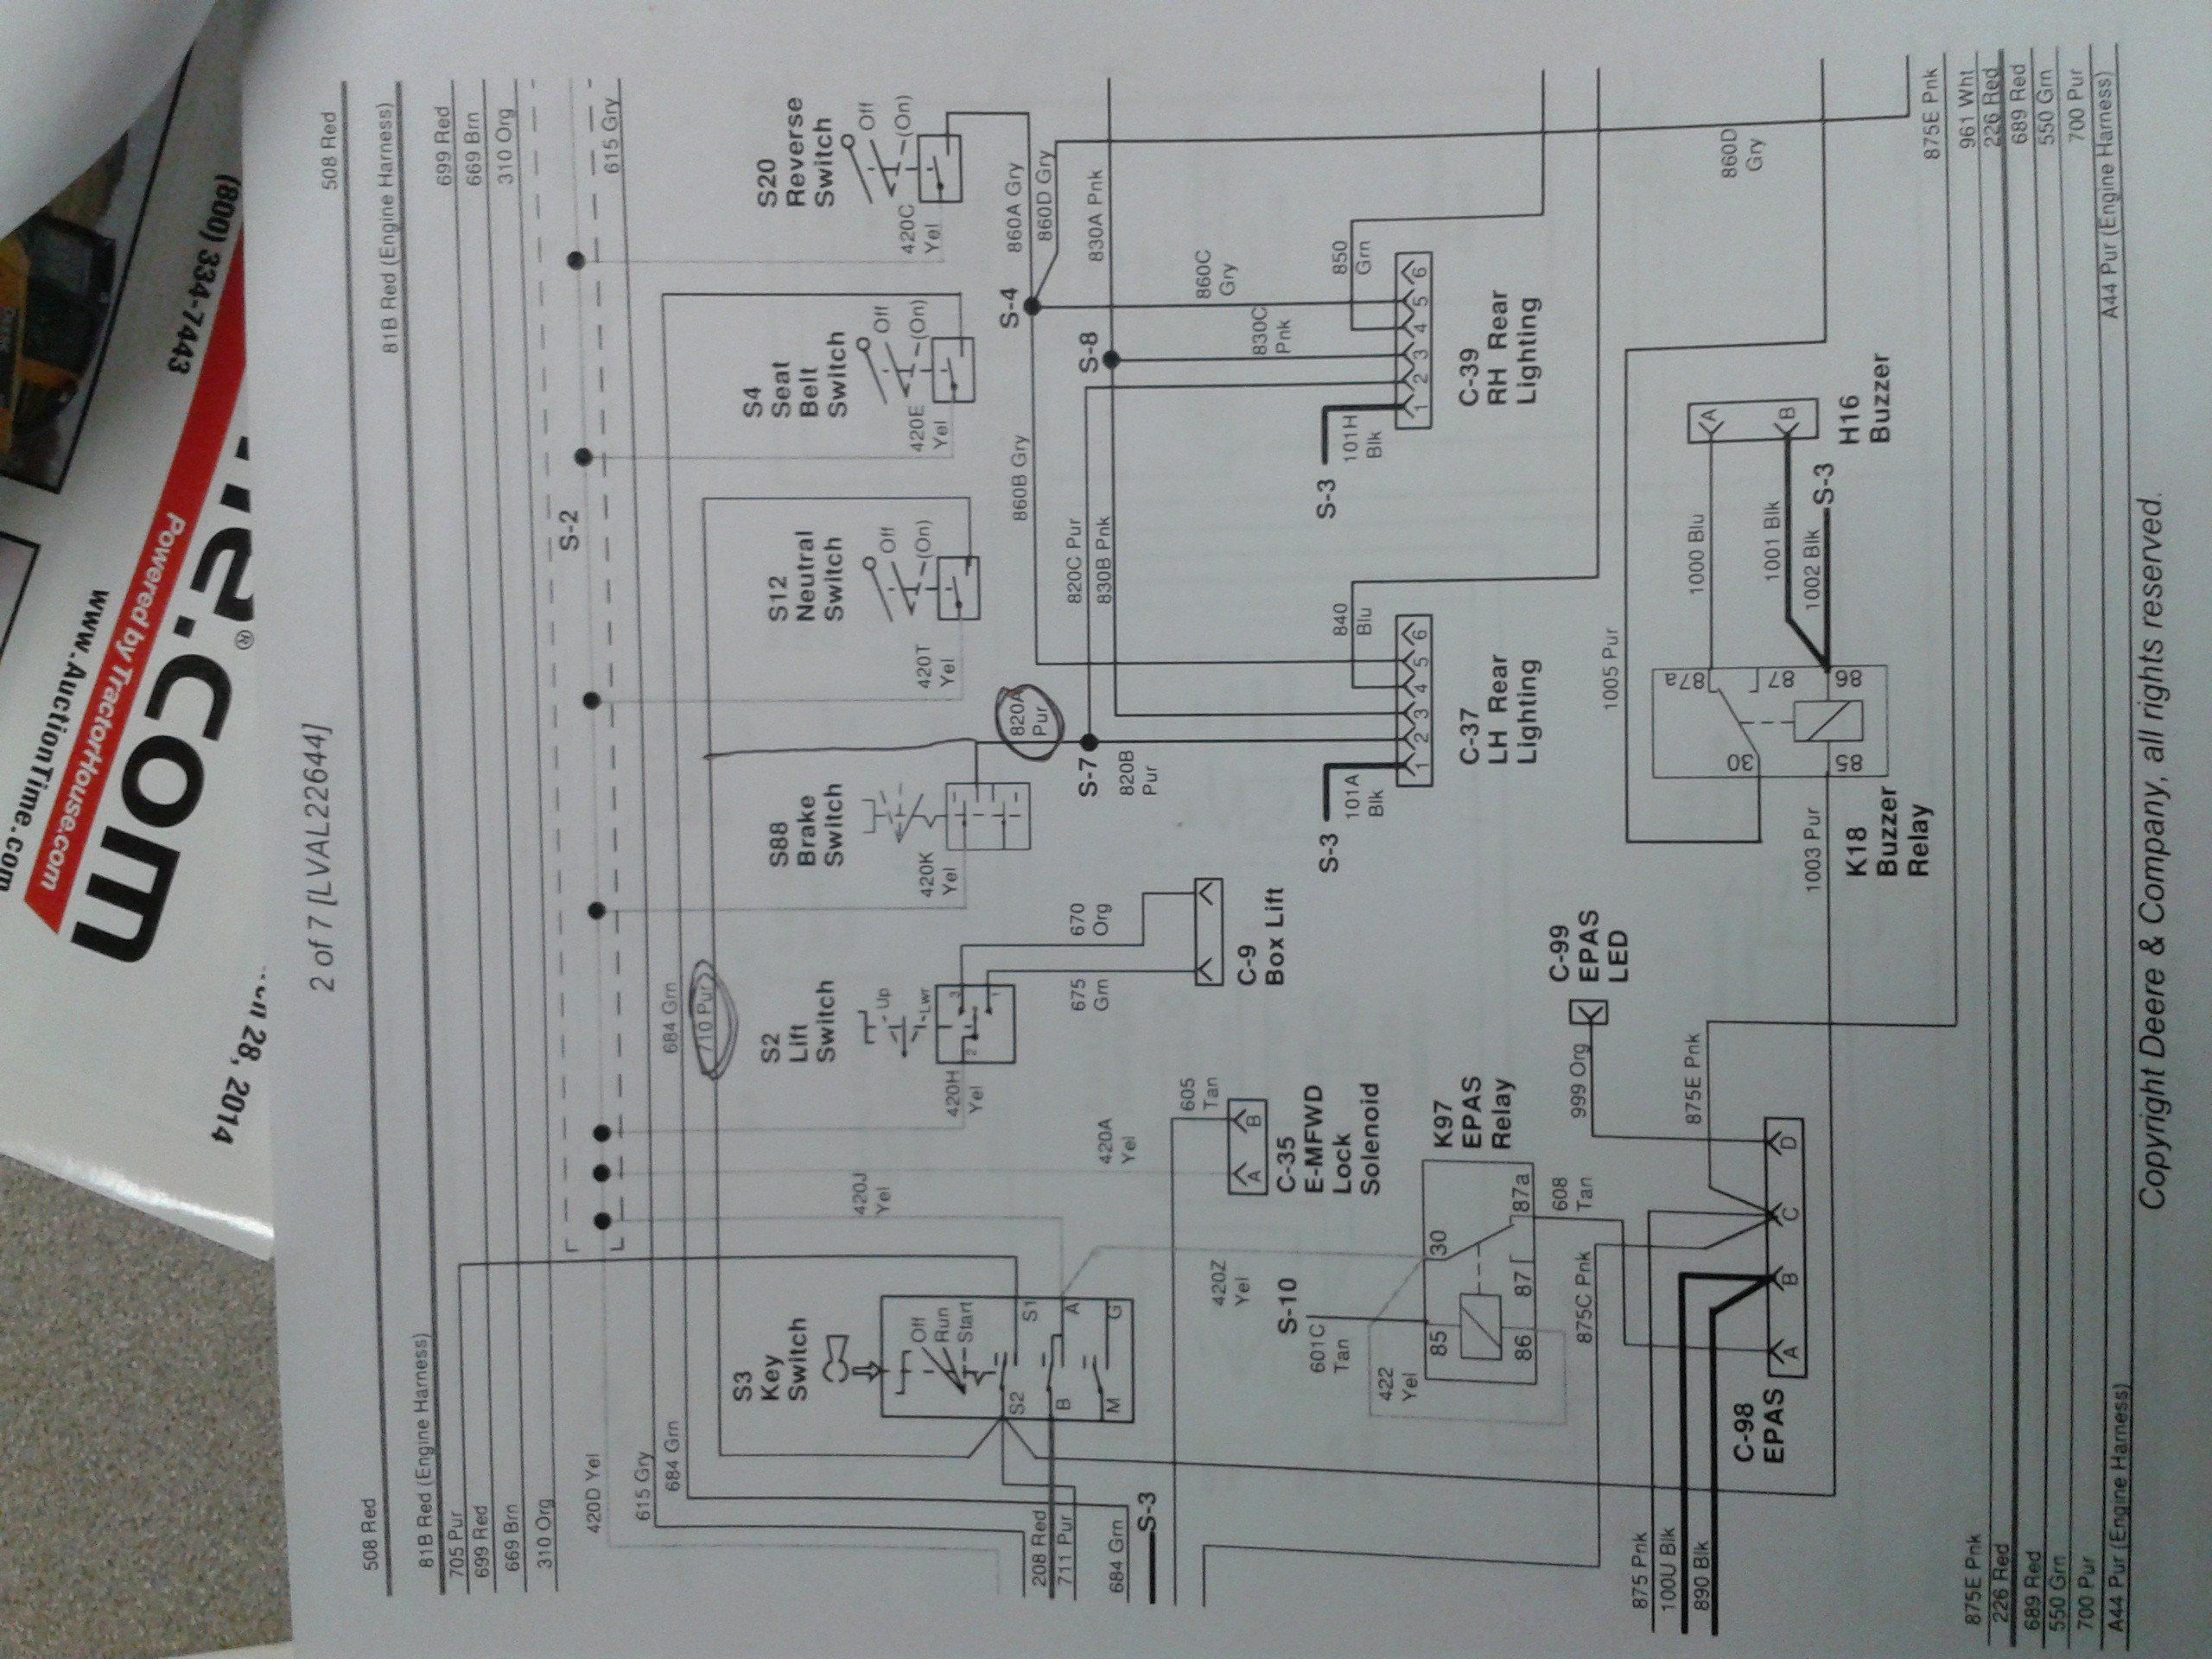 john deere m665 wiring diagram wiring schematic diagram. Black Bedroom Furniture Sets. Home Design Ideas